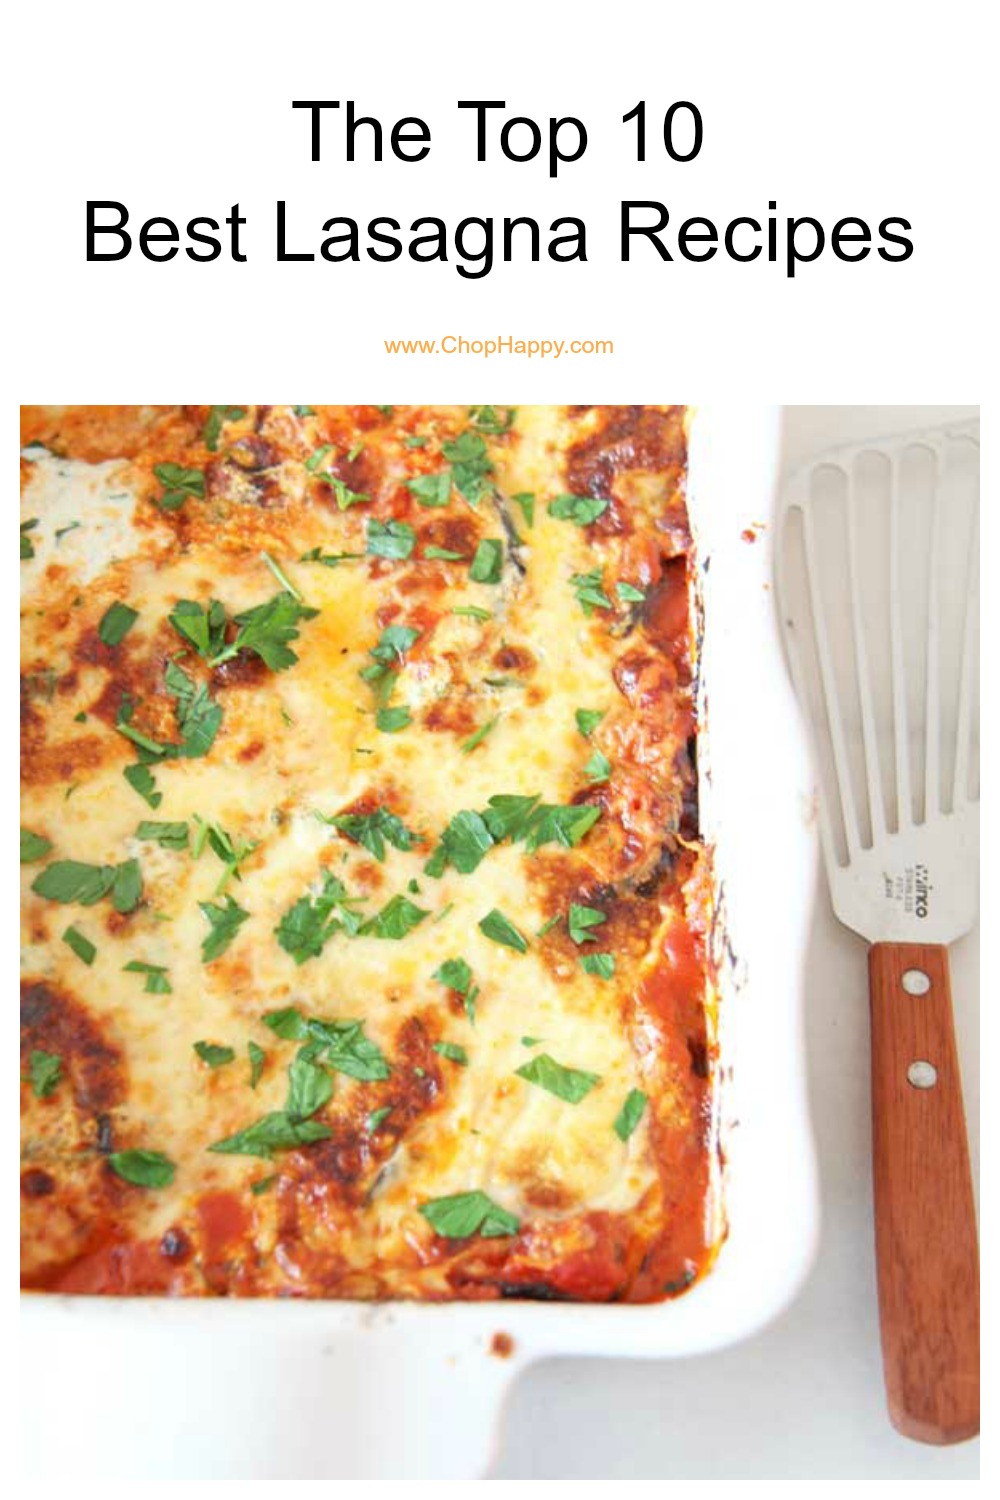 The Top 10 Best Lasagna Recipes